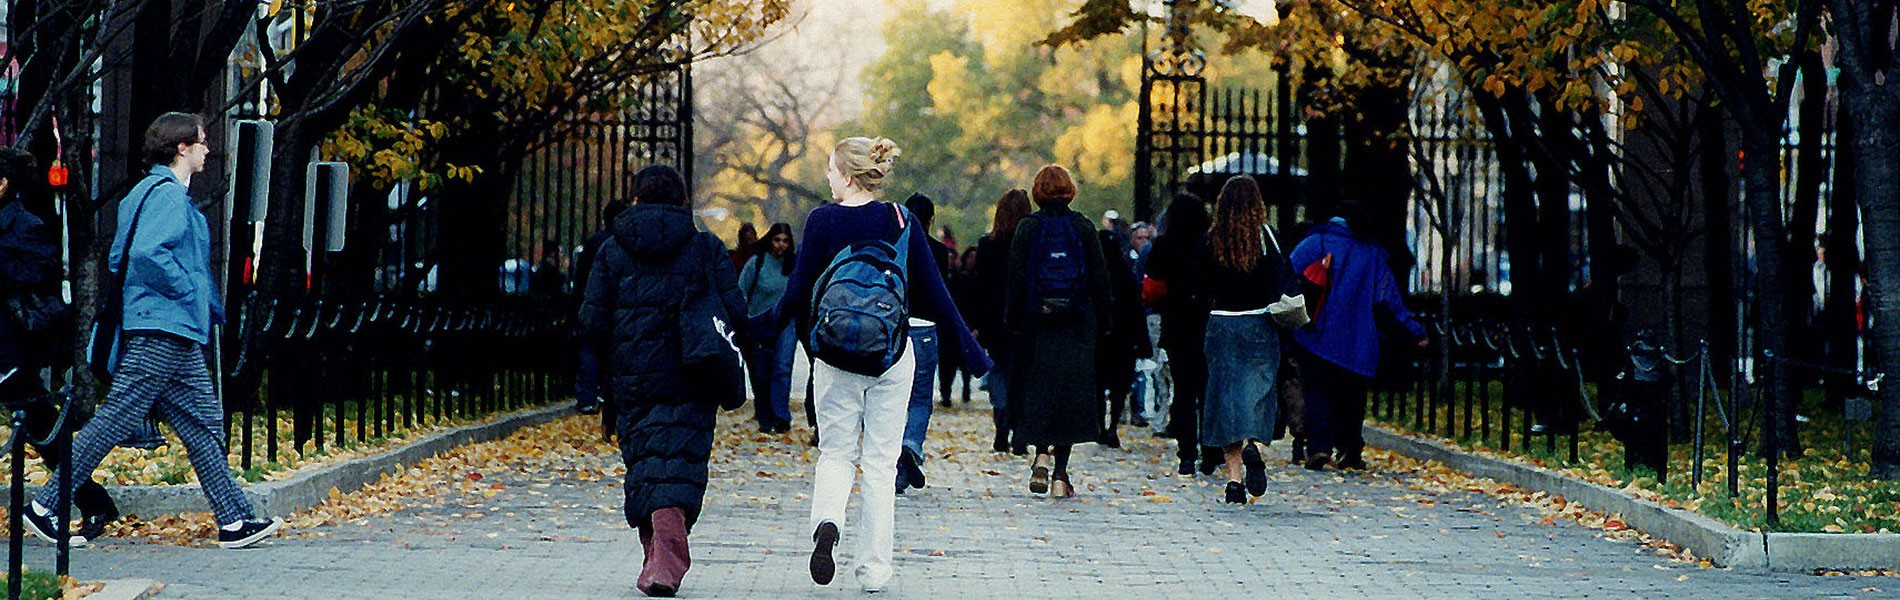 Students walk on campus along College Walk